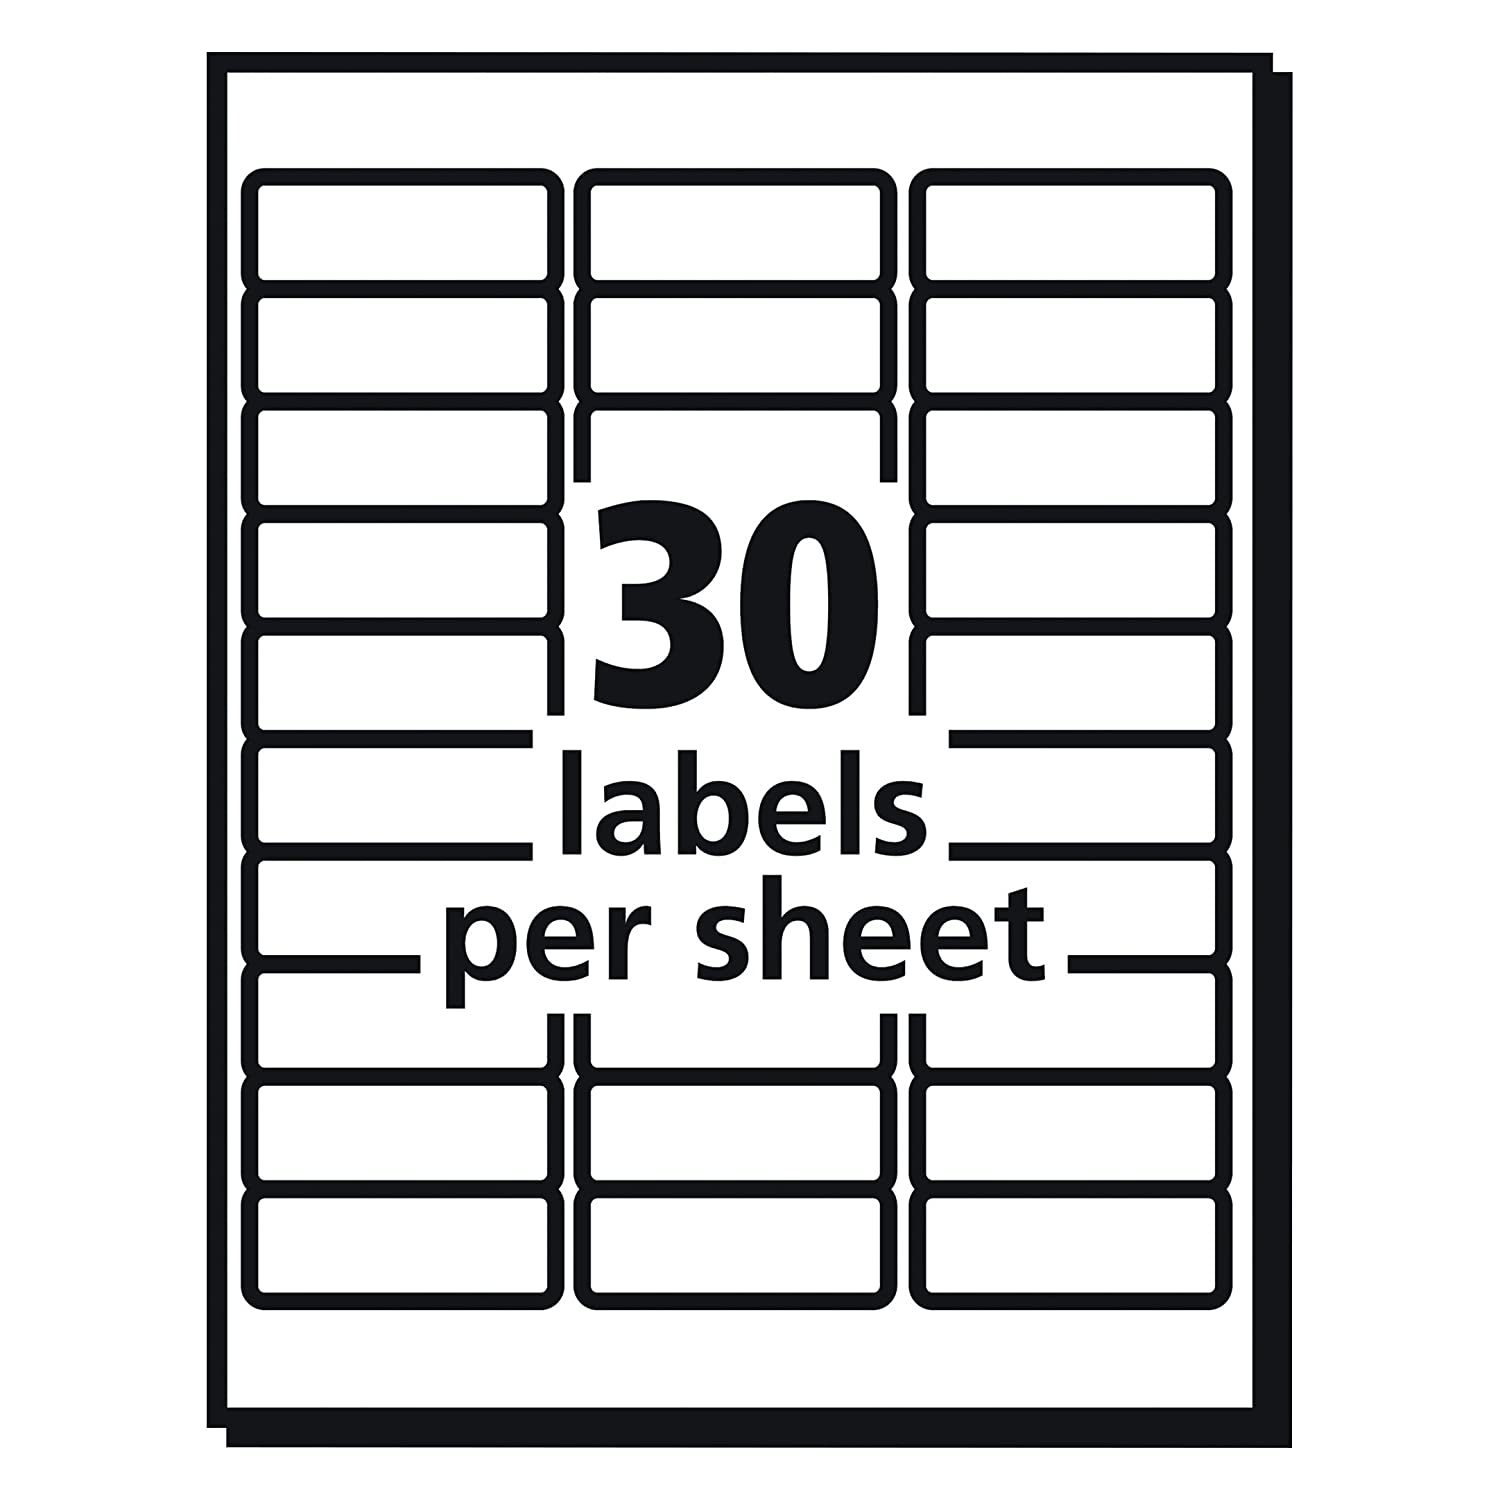 Avery 8460 address labels 1 argumentative essay on abortion pro avery template 5630 avery 5630 easy peel laser print mailing 71qze3z1kbl avery template 5630 pronofoot35fo Choice Image